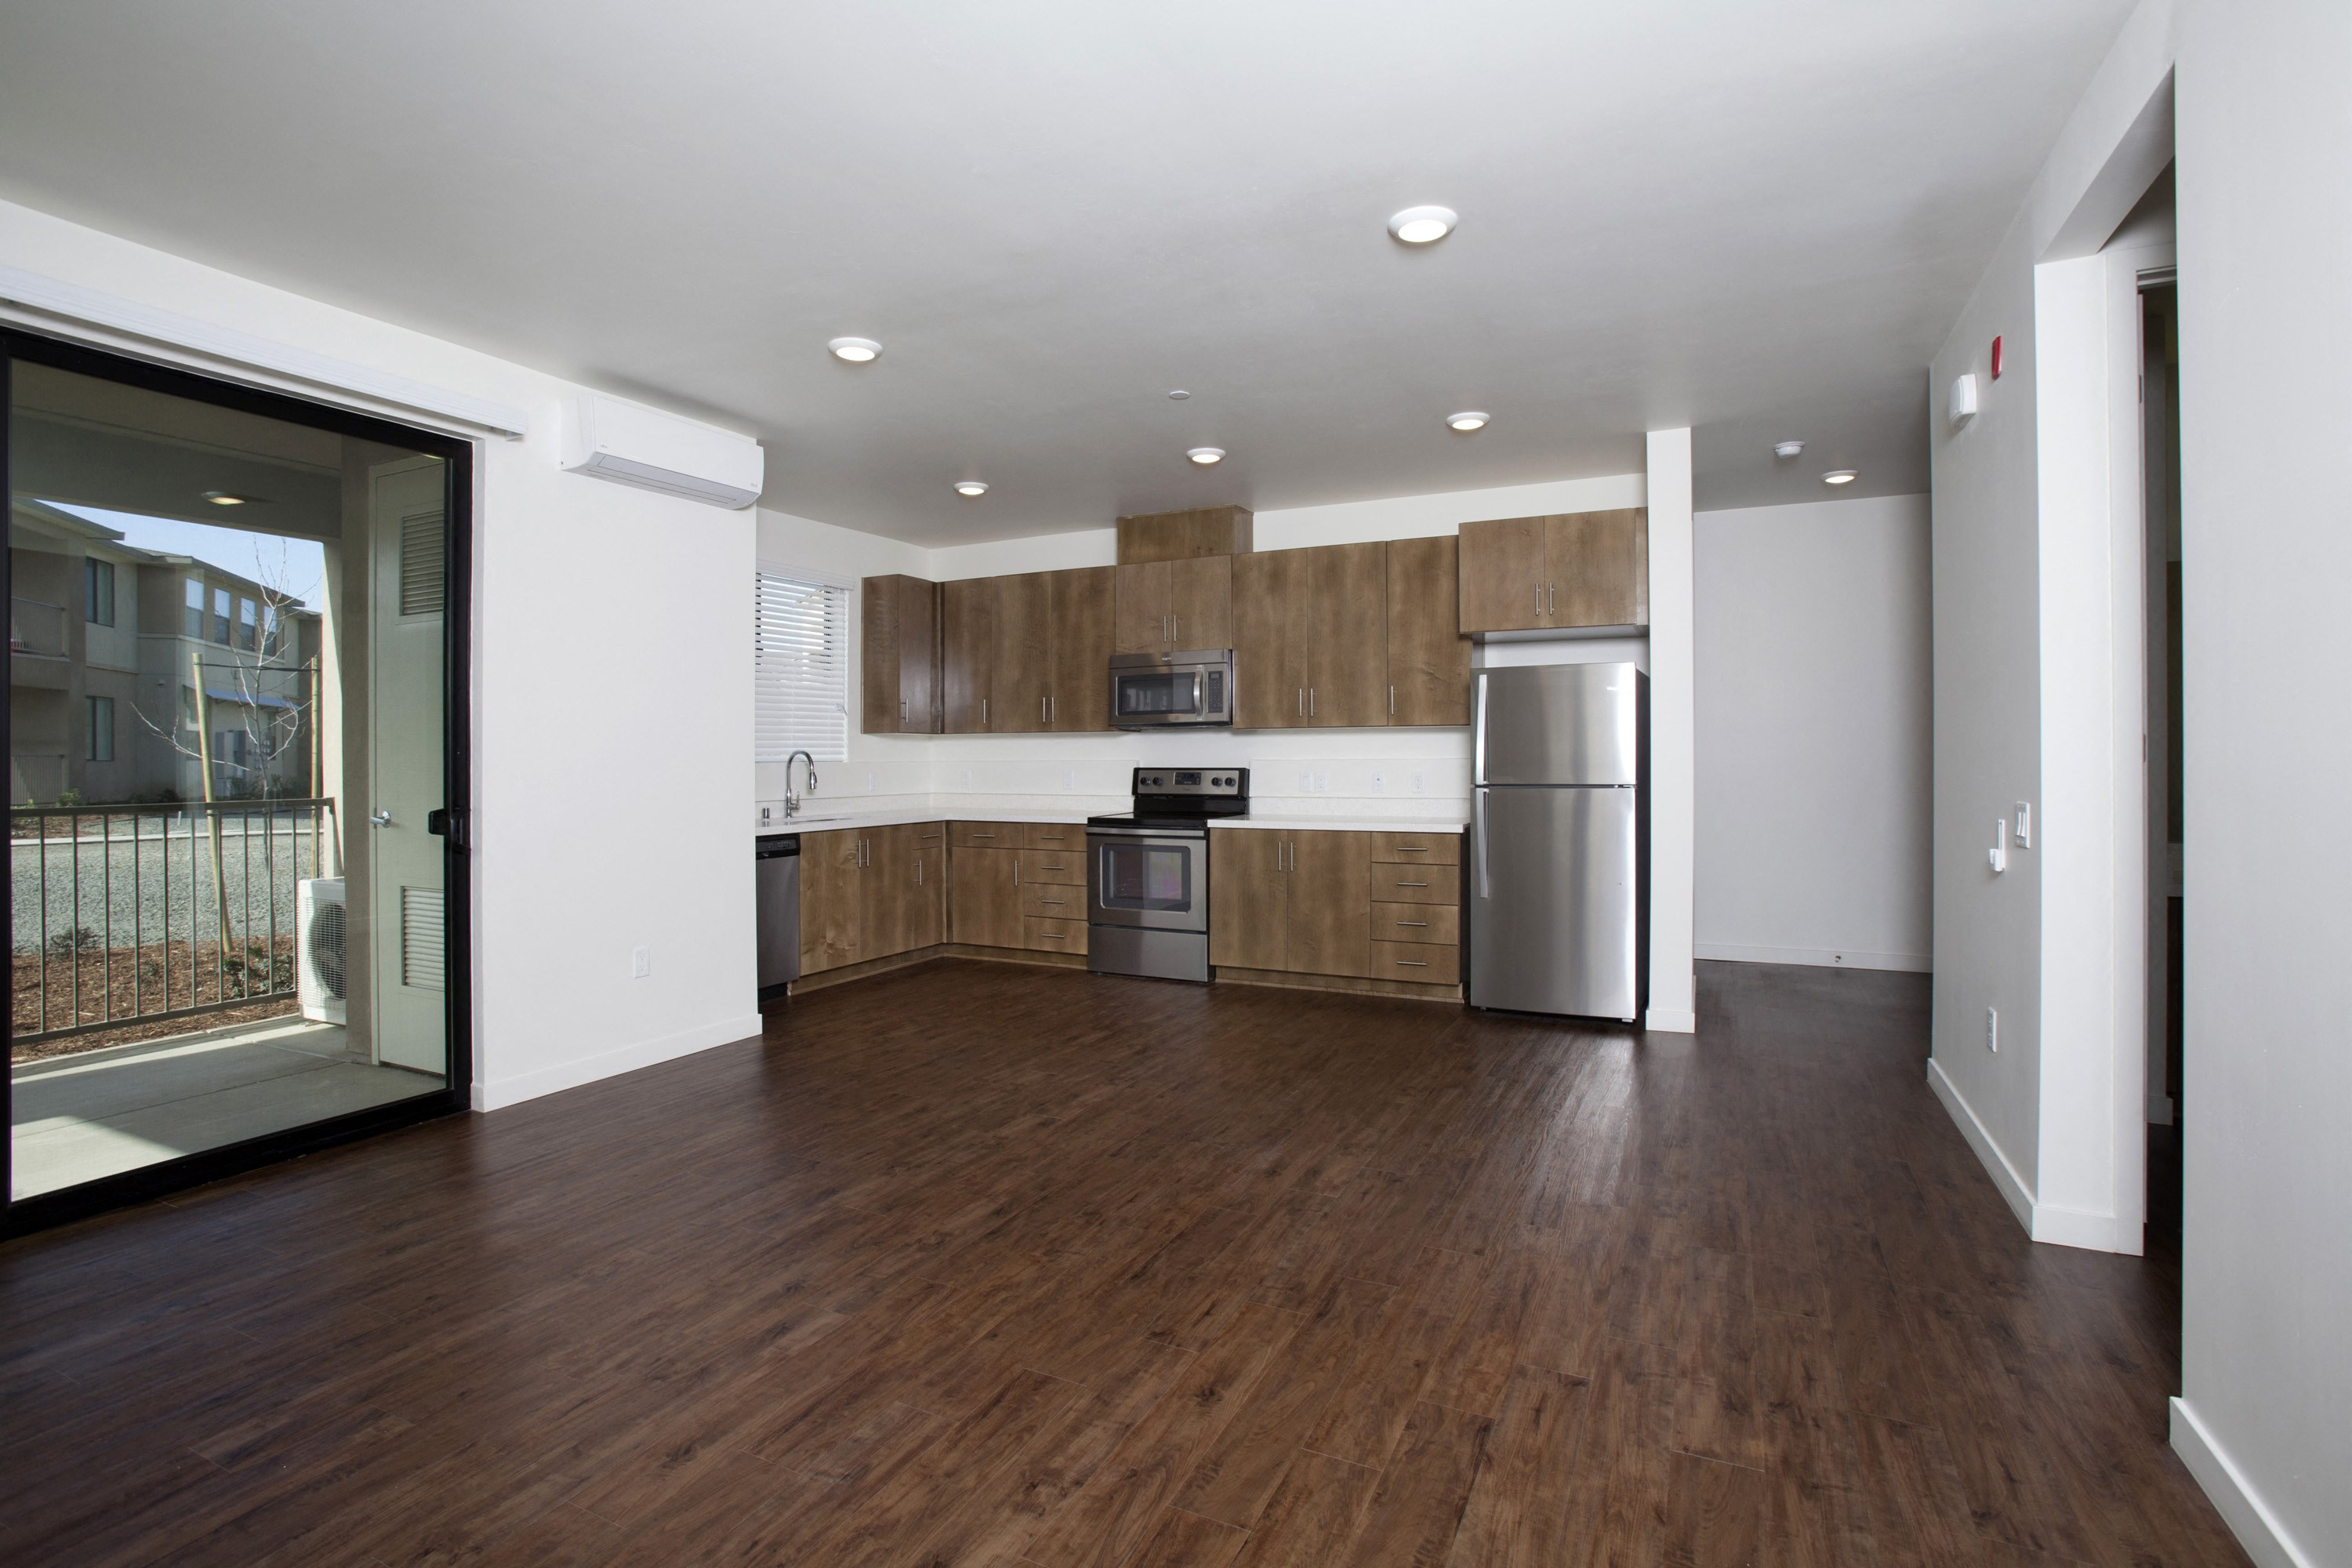 Park Square at Seven Oaks Unit Type B - Two Bedroom Kitchen Bakersfield CA Apartments